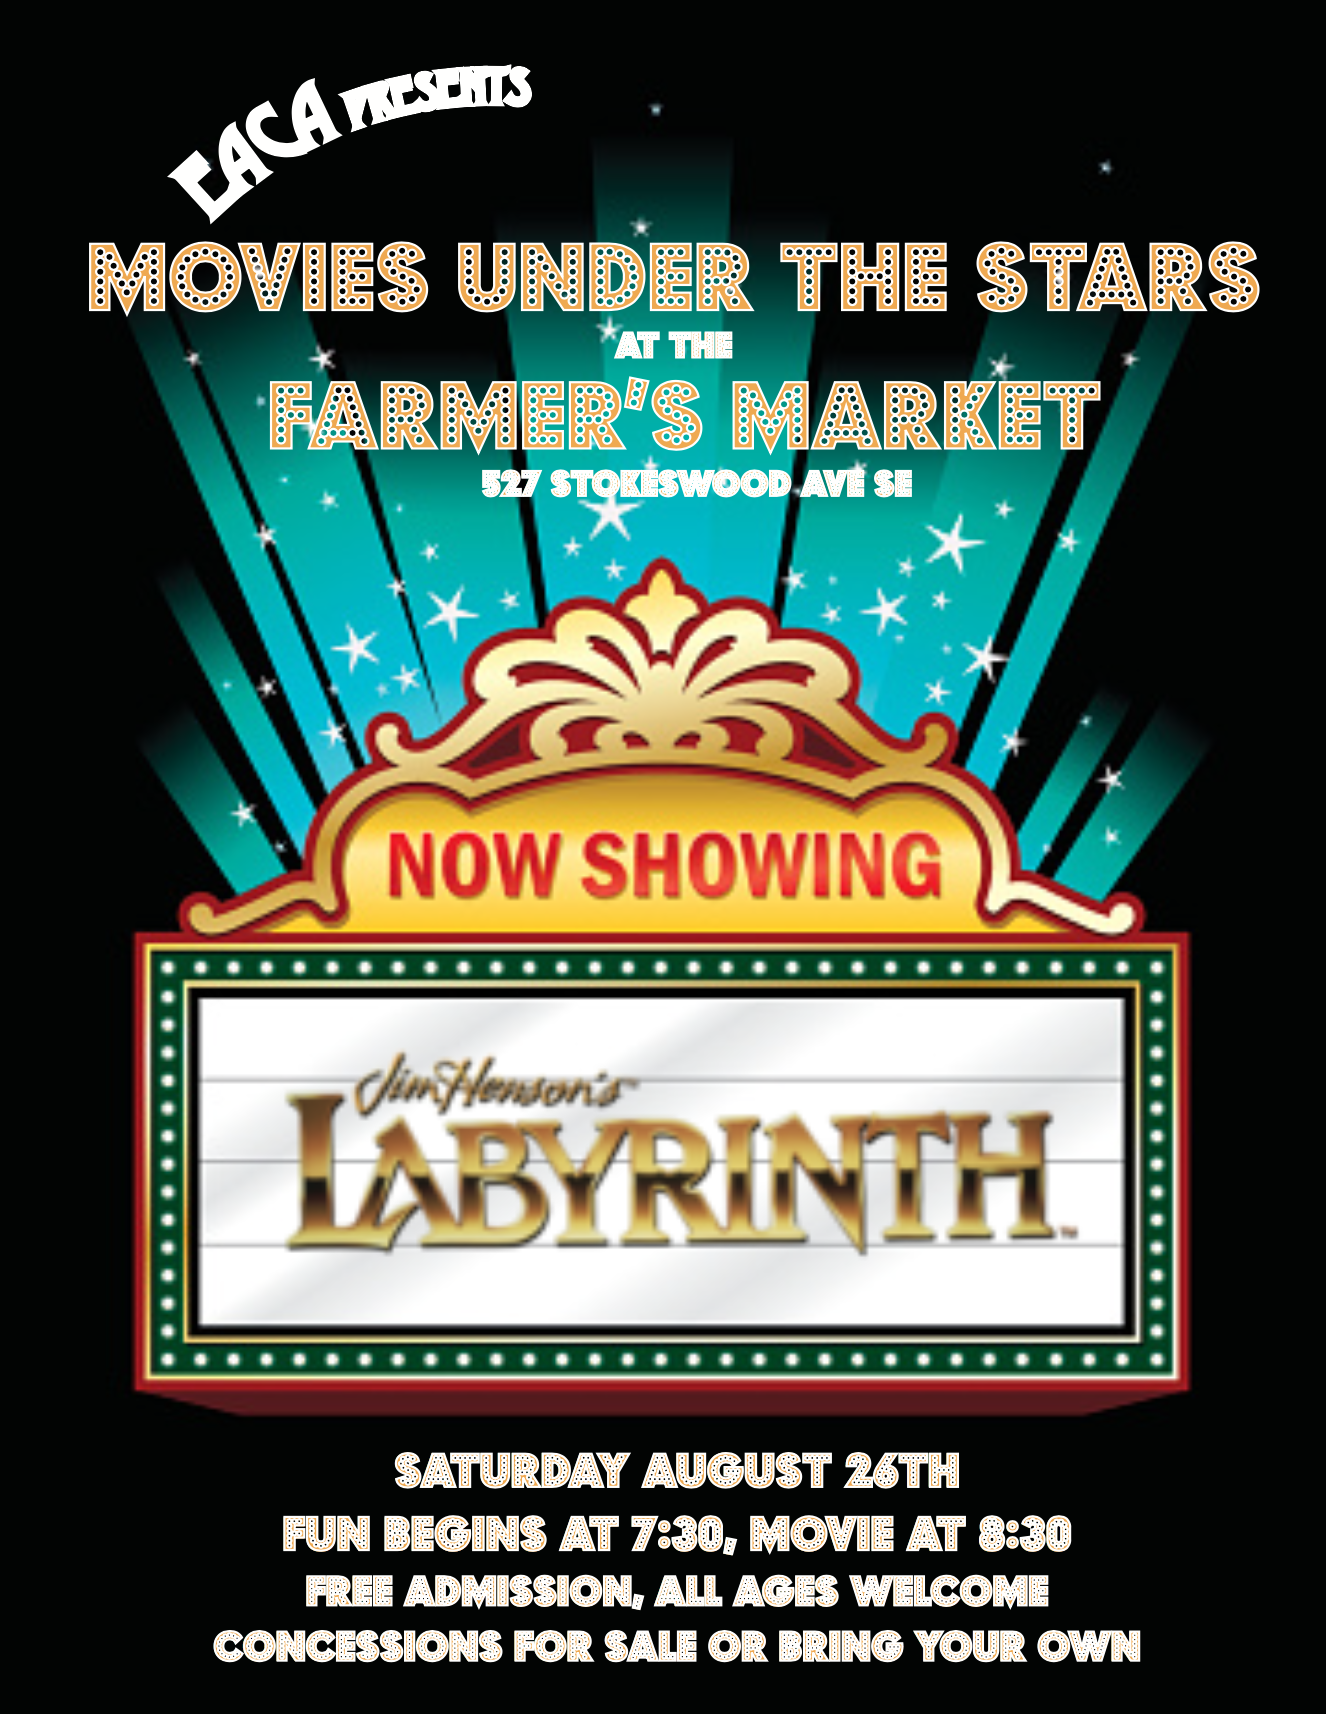 EACA Presents: Movies under the stars!